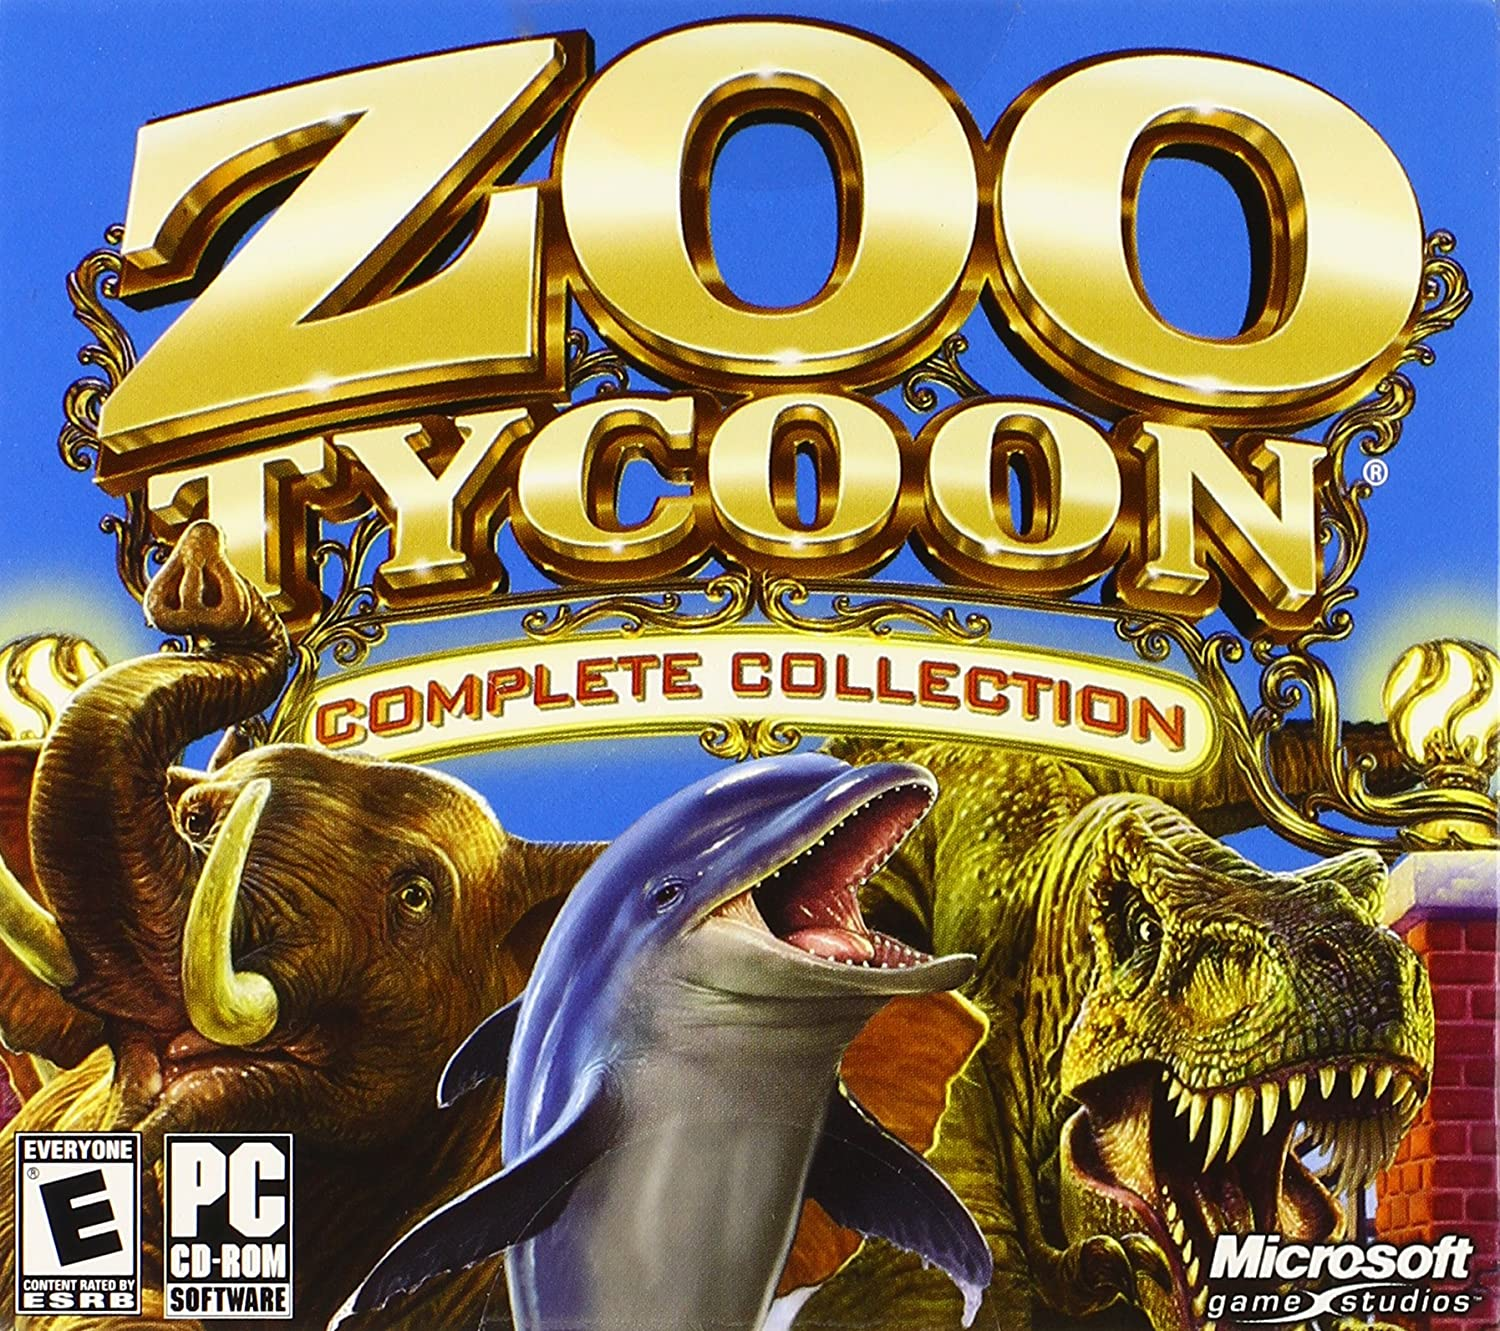 Zoo Tycoon Complete Collection - Standard Edition: PC